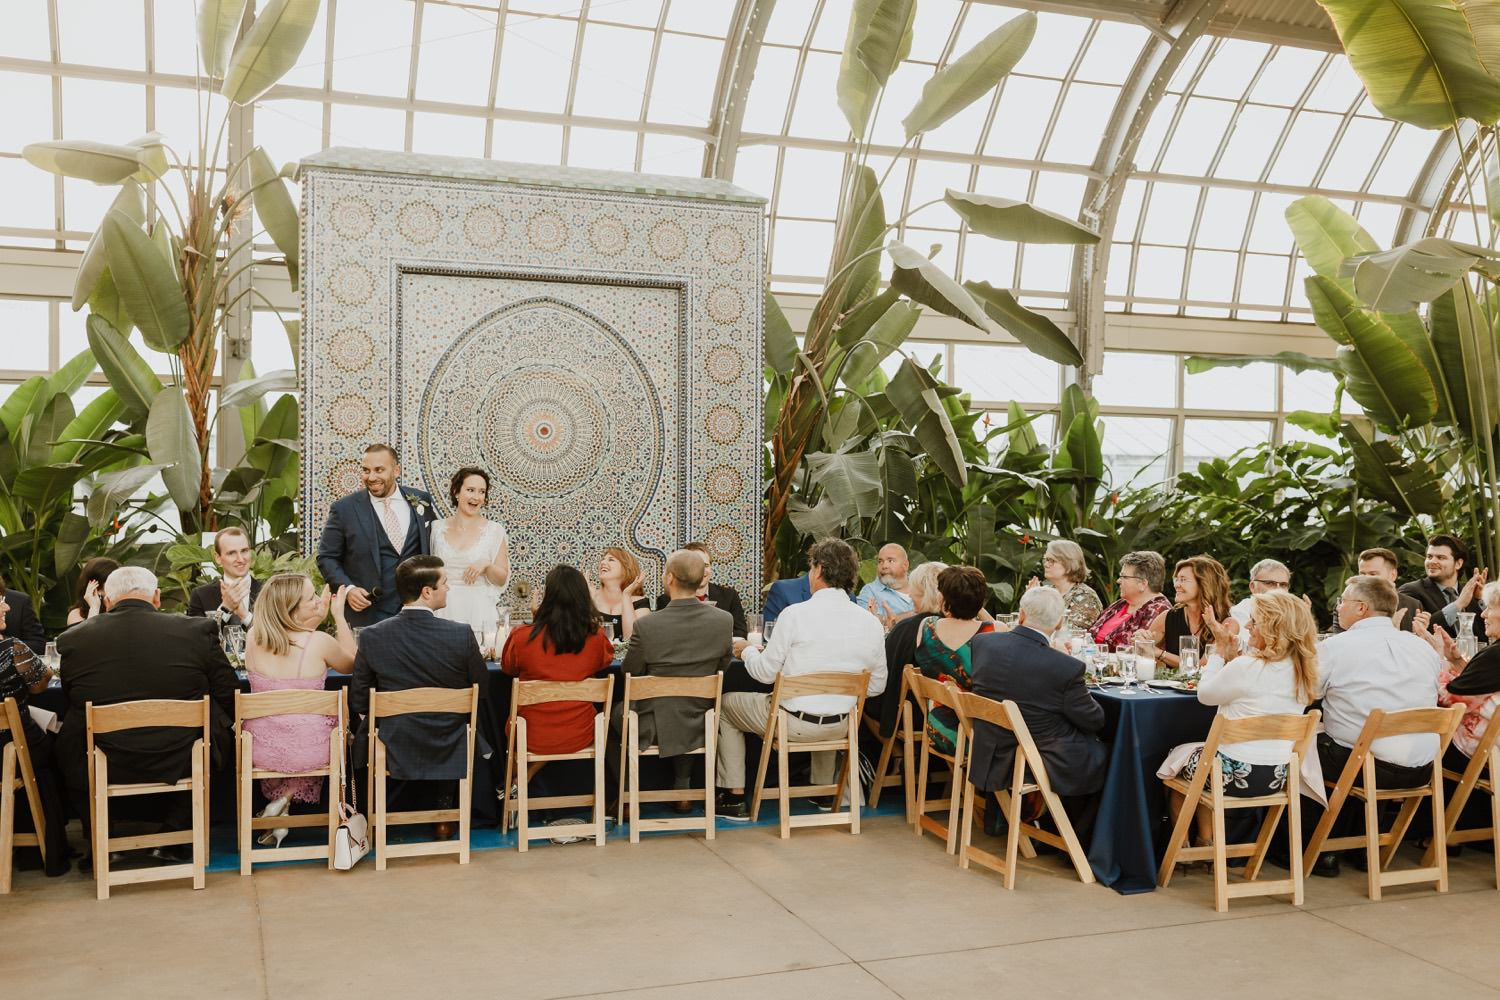 bride and groom greet their guest during the reception at Garfield Park conservatory